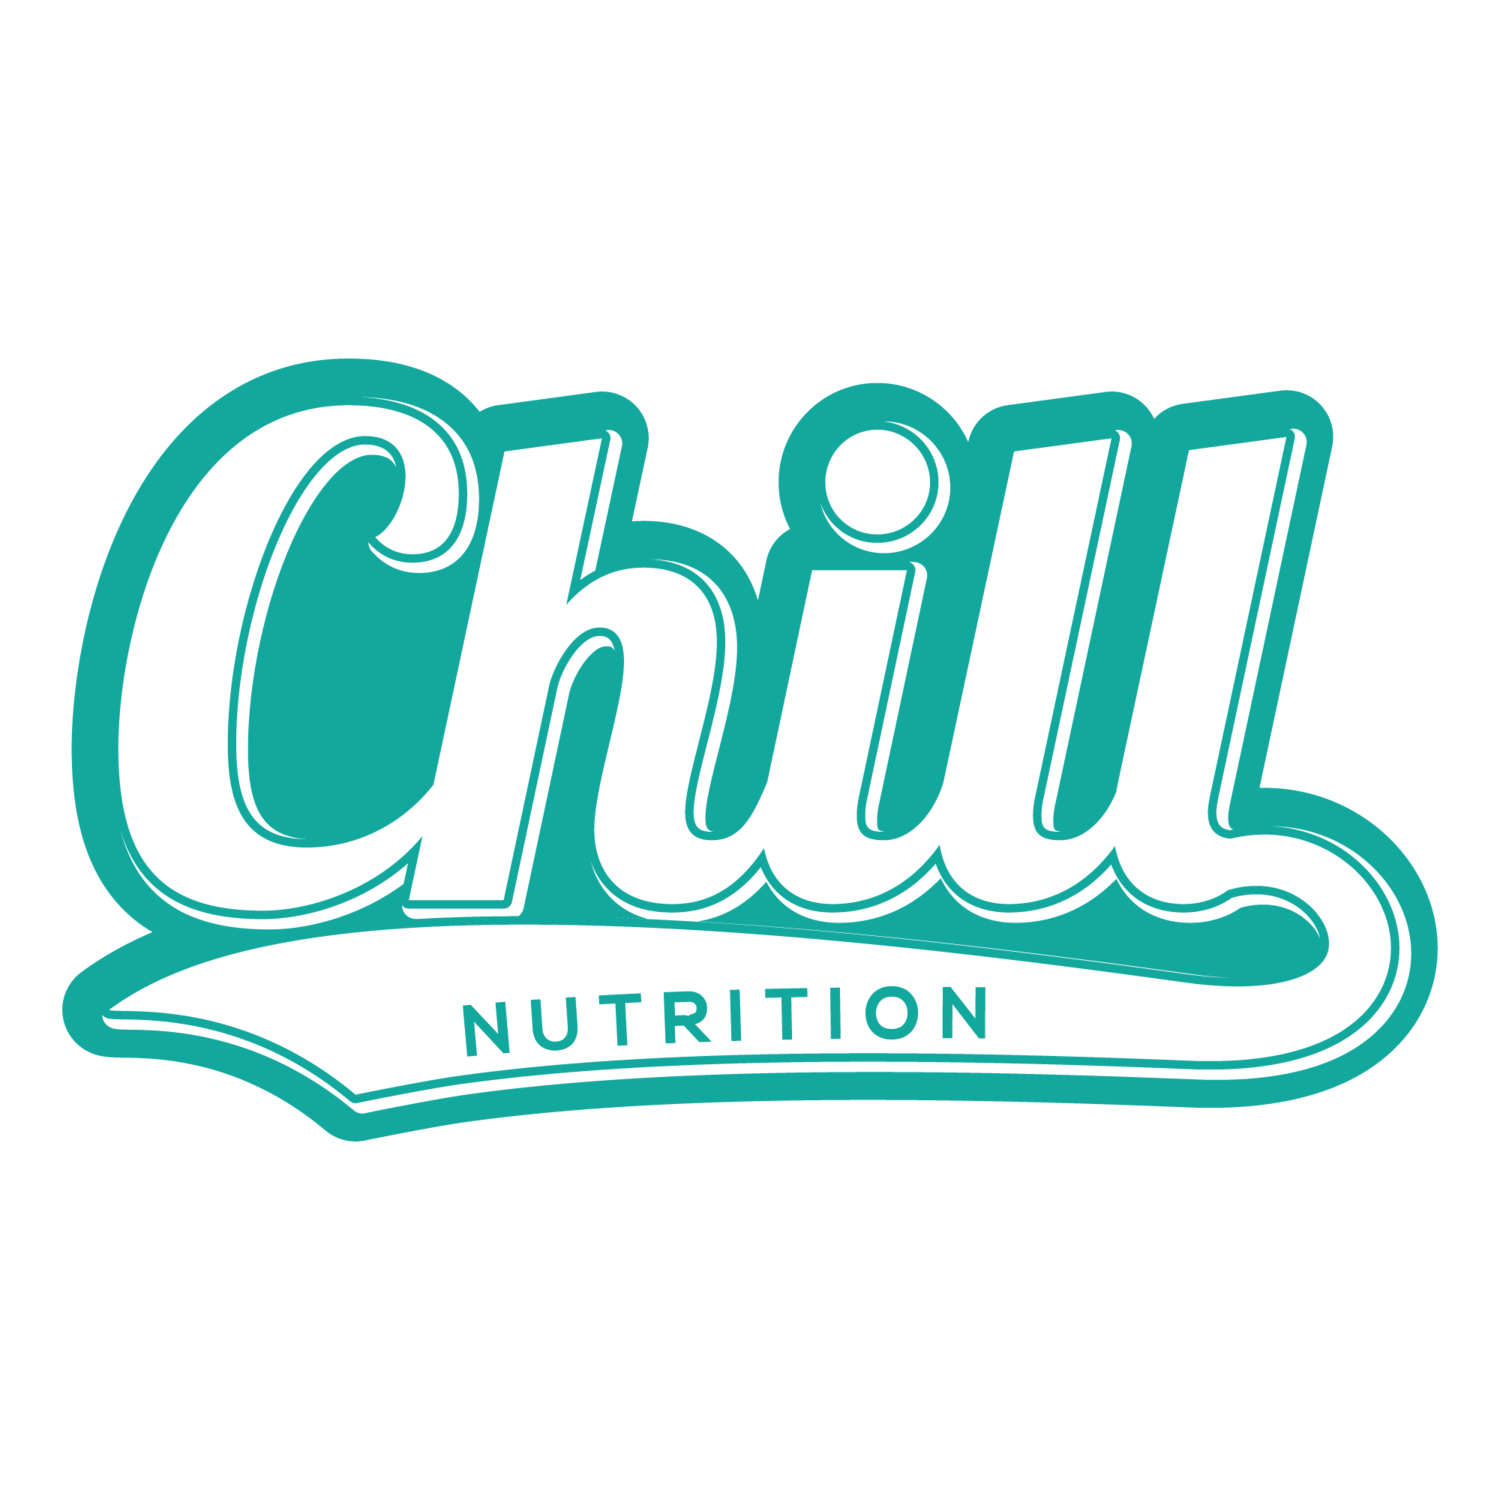 Chill Nutrition